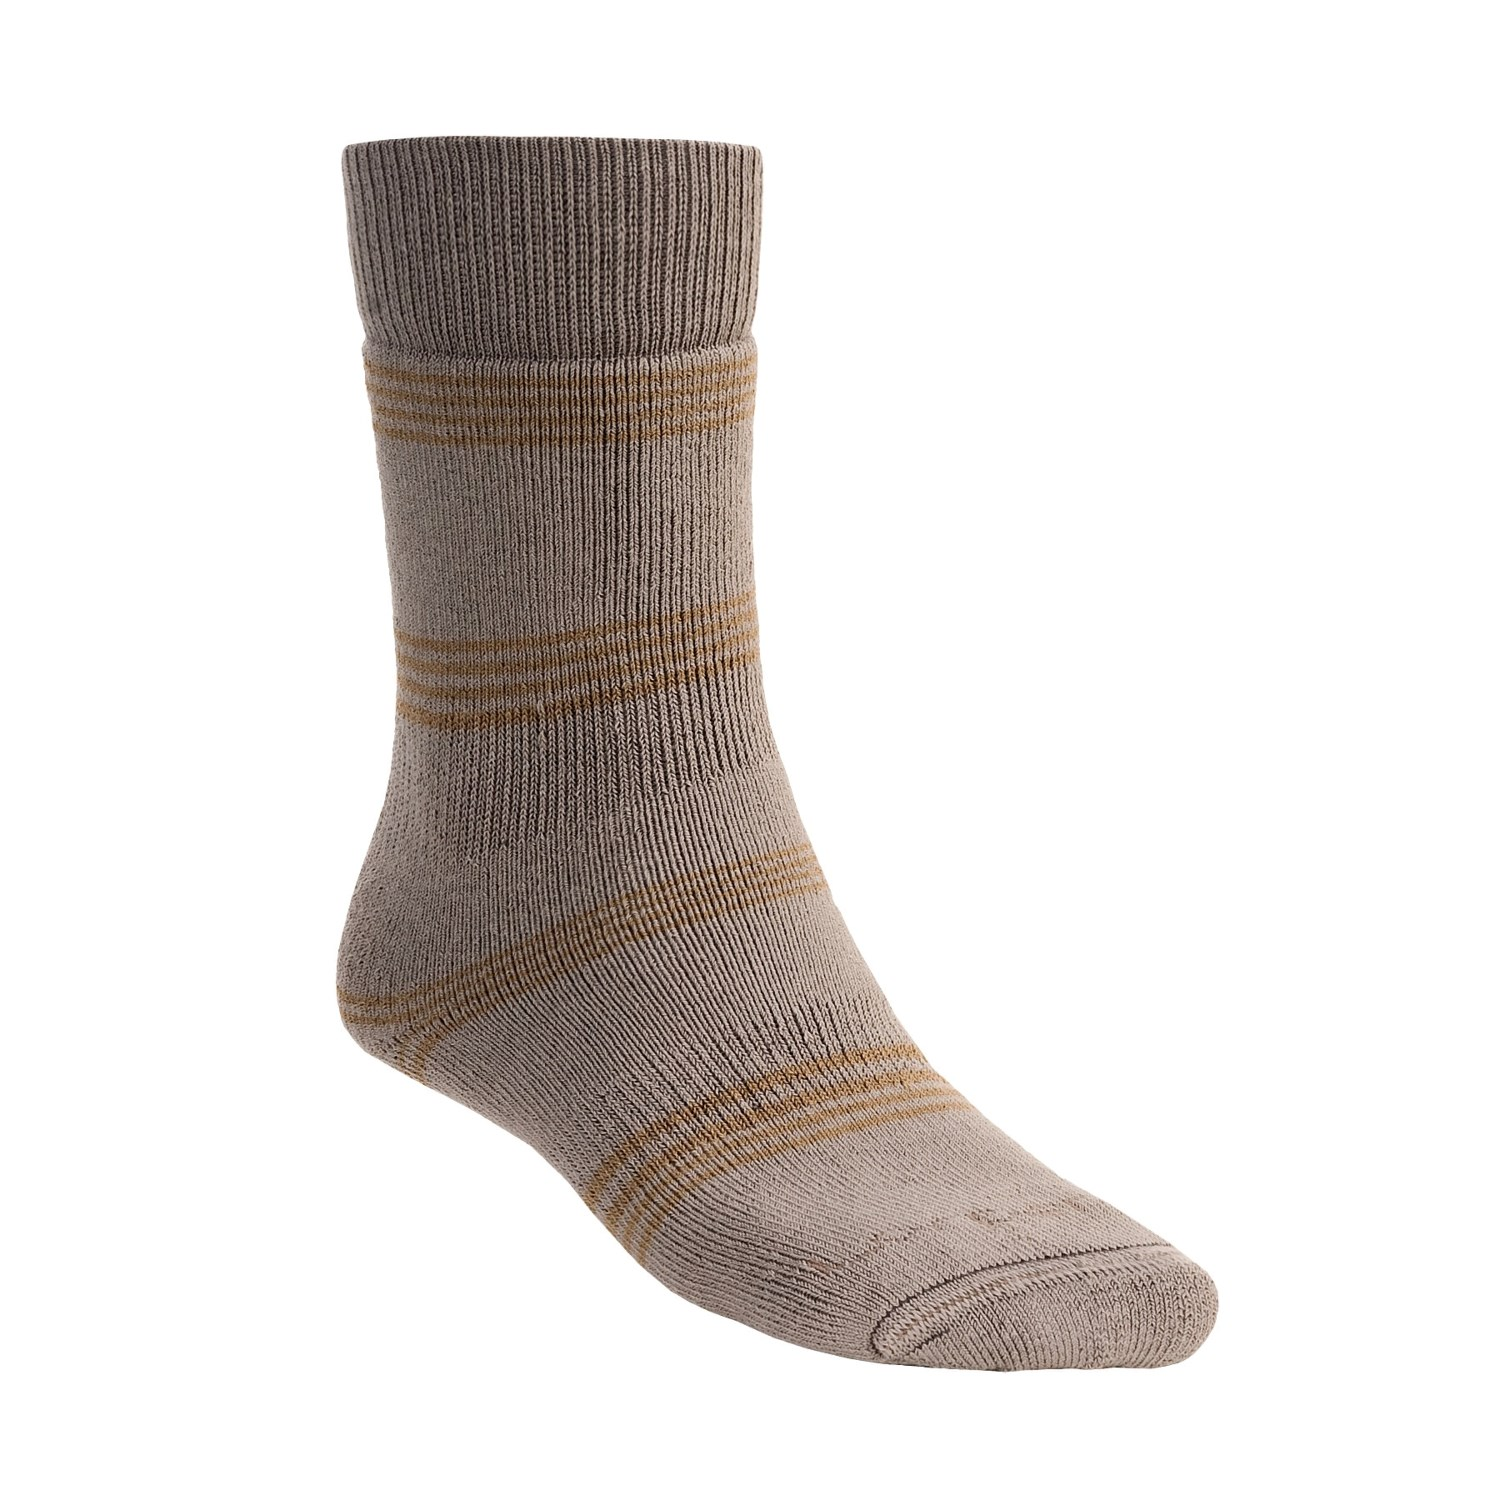 Find great deals on eBay for modal socks. Shop with confidence.